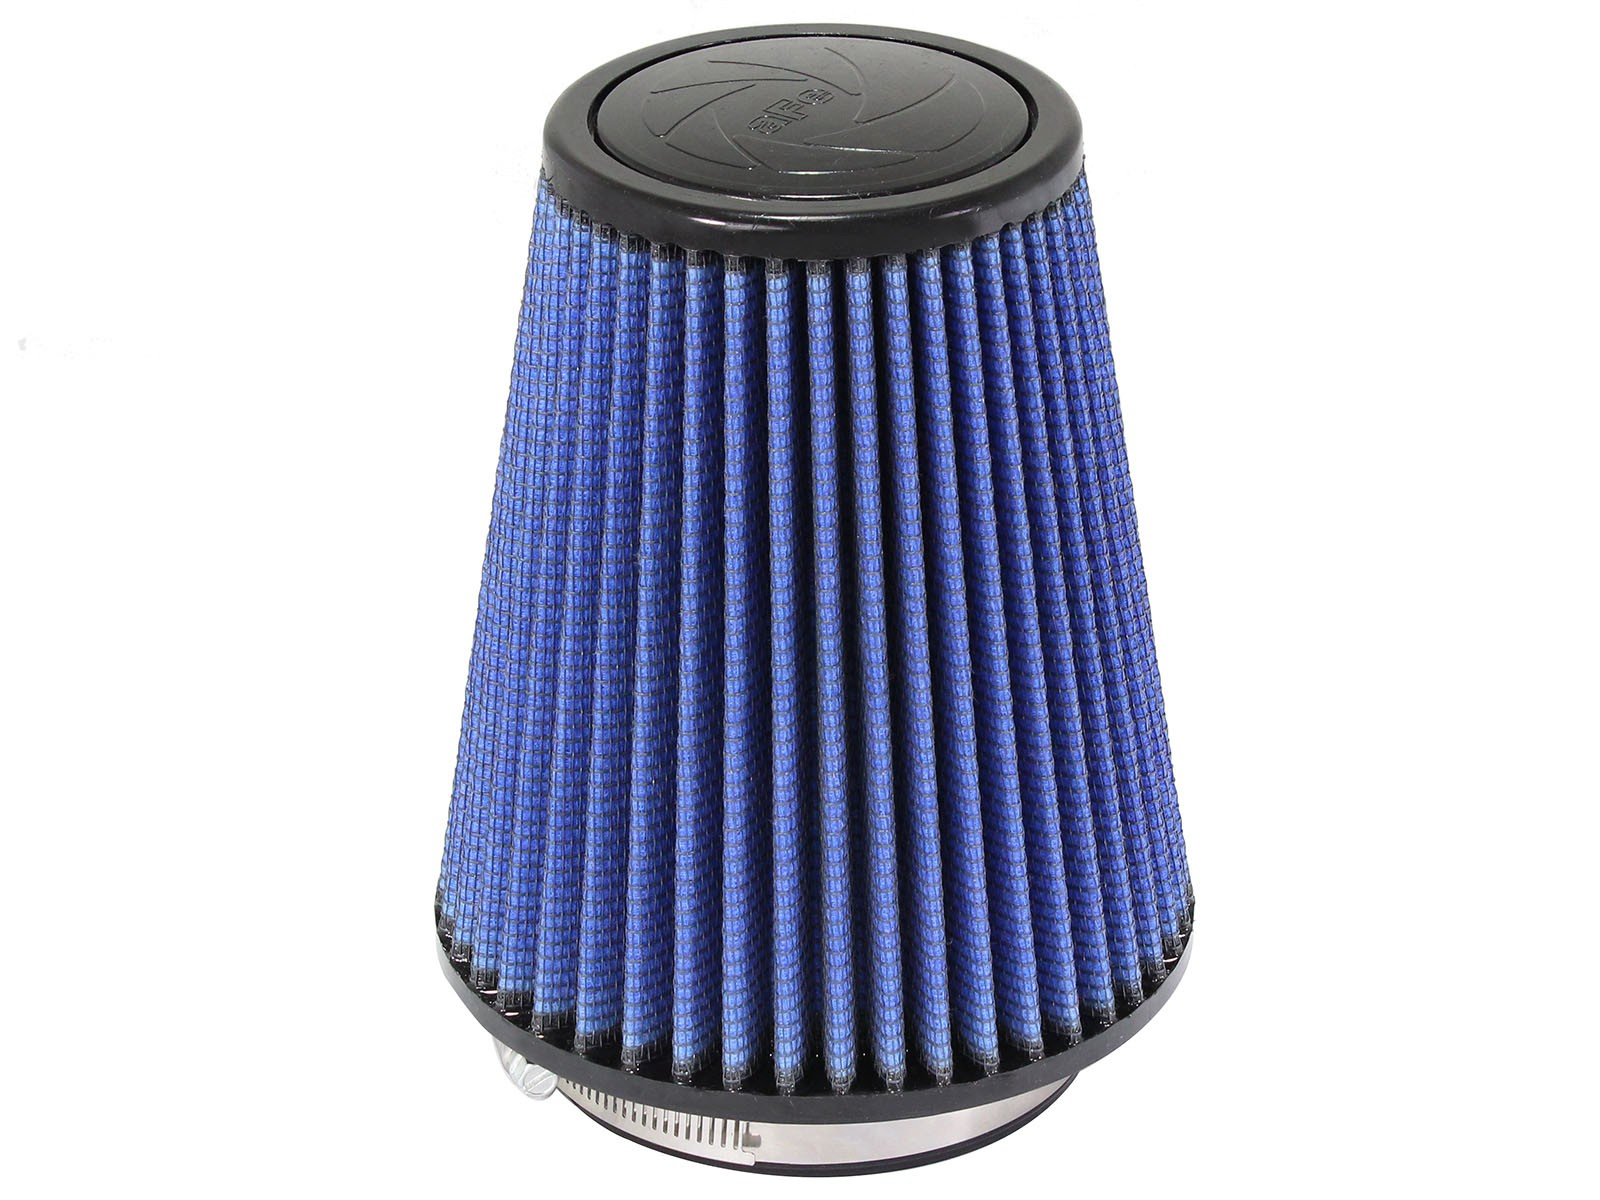 aFe POWER 24-40507 Magnum FLOW Pro 5R Air Filter